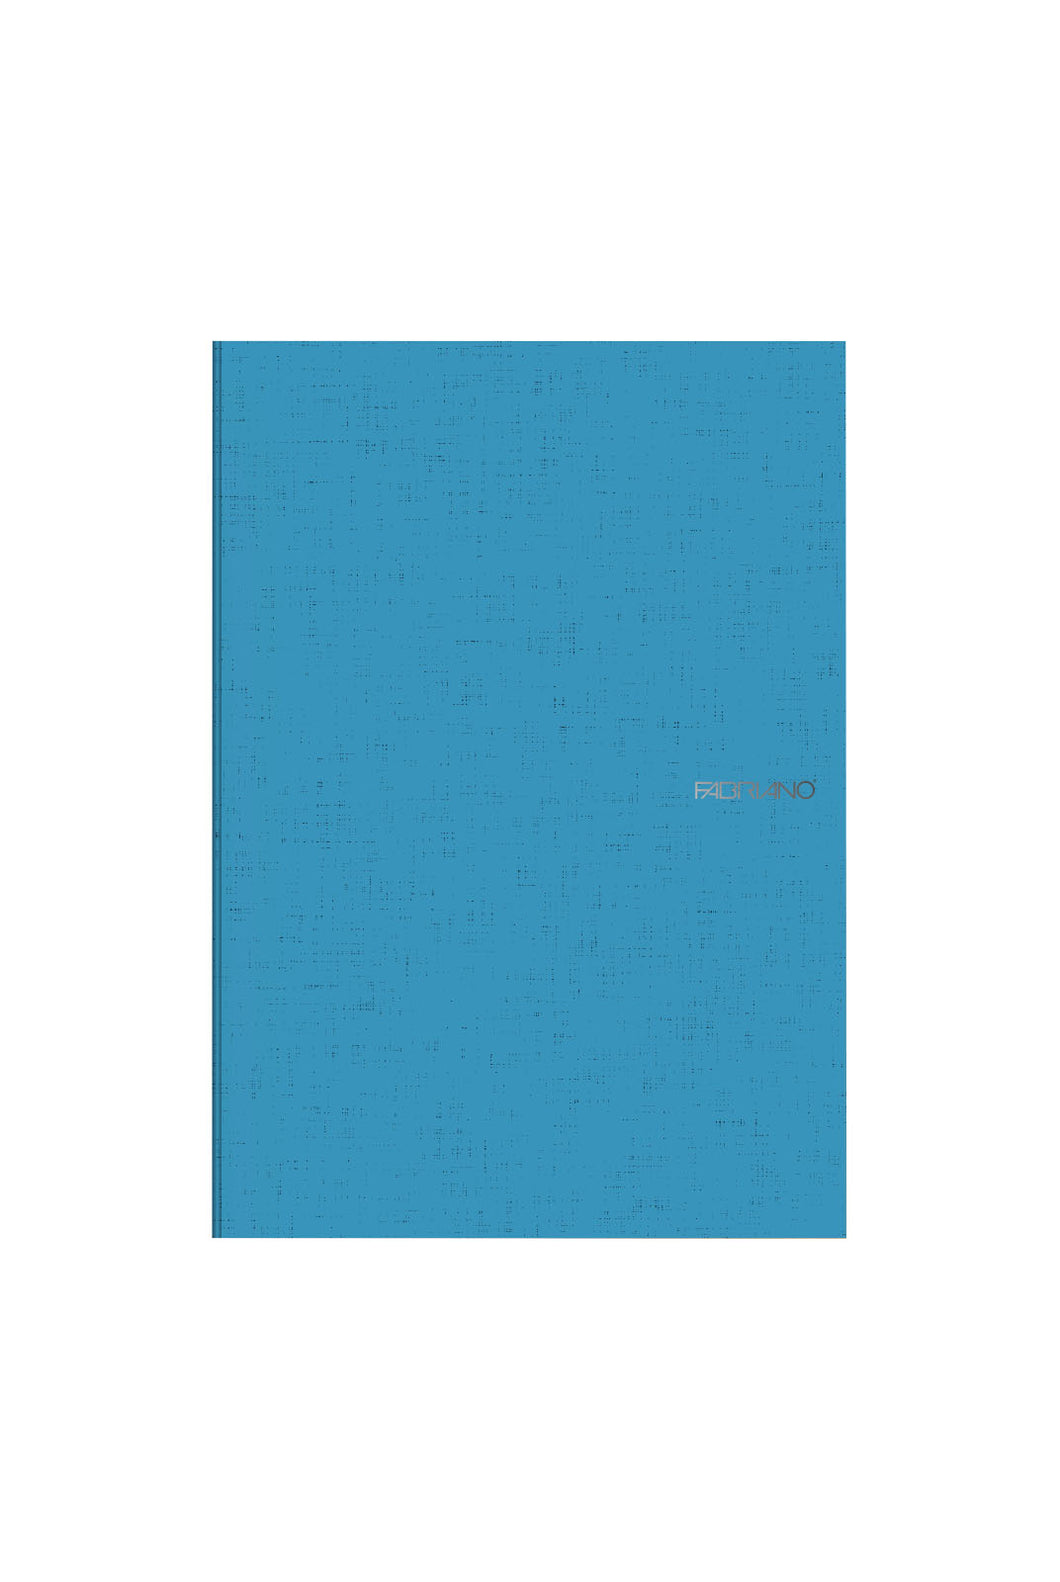 Fabriano Boutique - EcoQua Plus Notebook - Ruled - A4 (21x29.7cm) - Blue